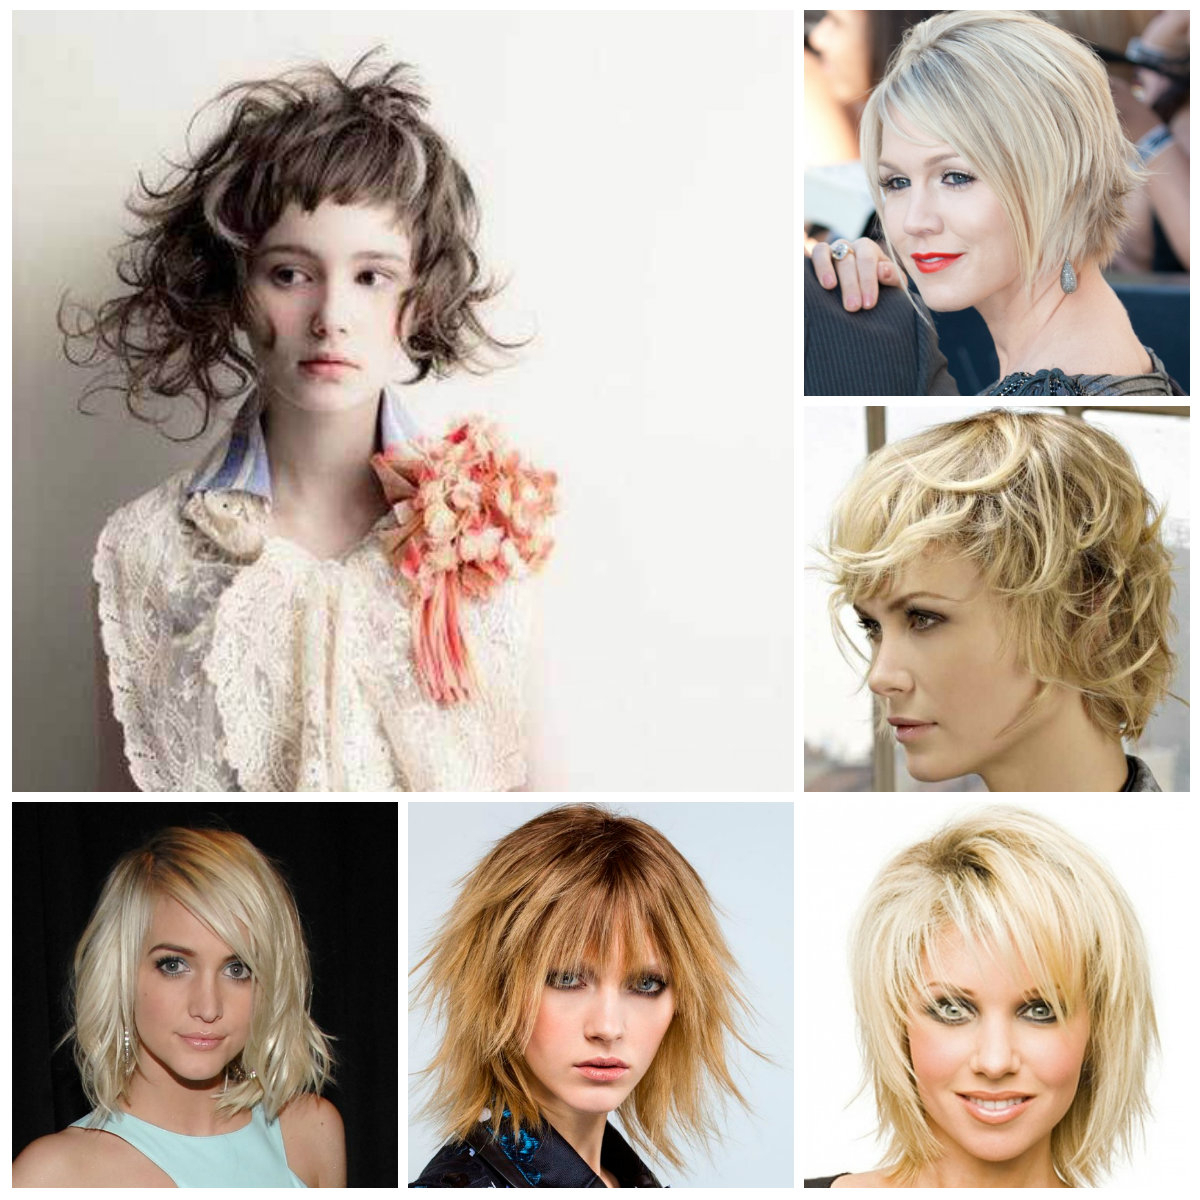 Shag Hairstyles For Fine Hair | Hairstyles For Women 2019, Haircuts Pertaining To Volume And Shagginess Hairstyles (View 13 of 20)